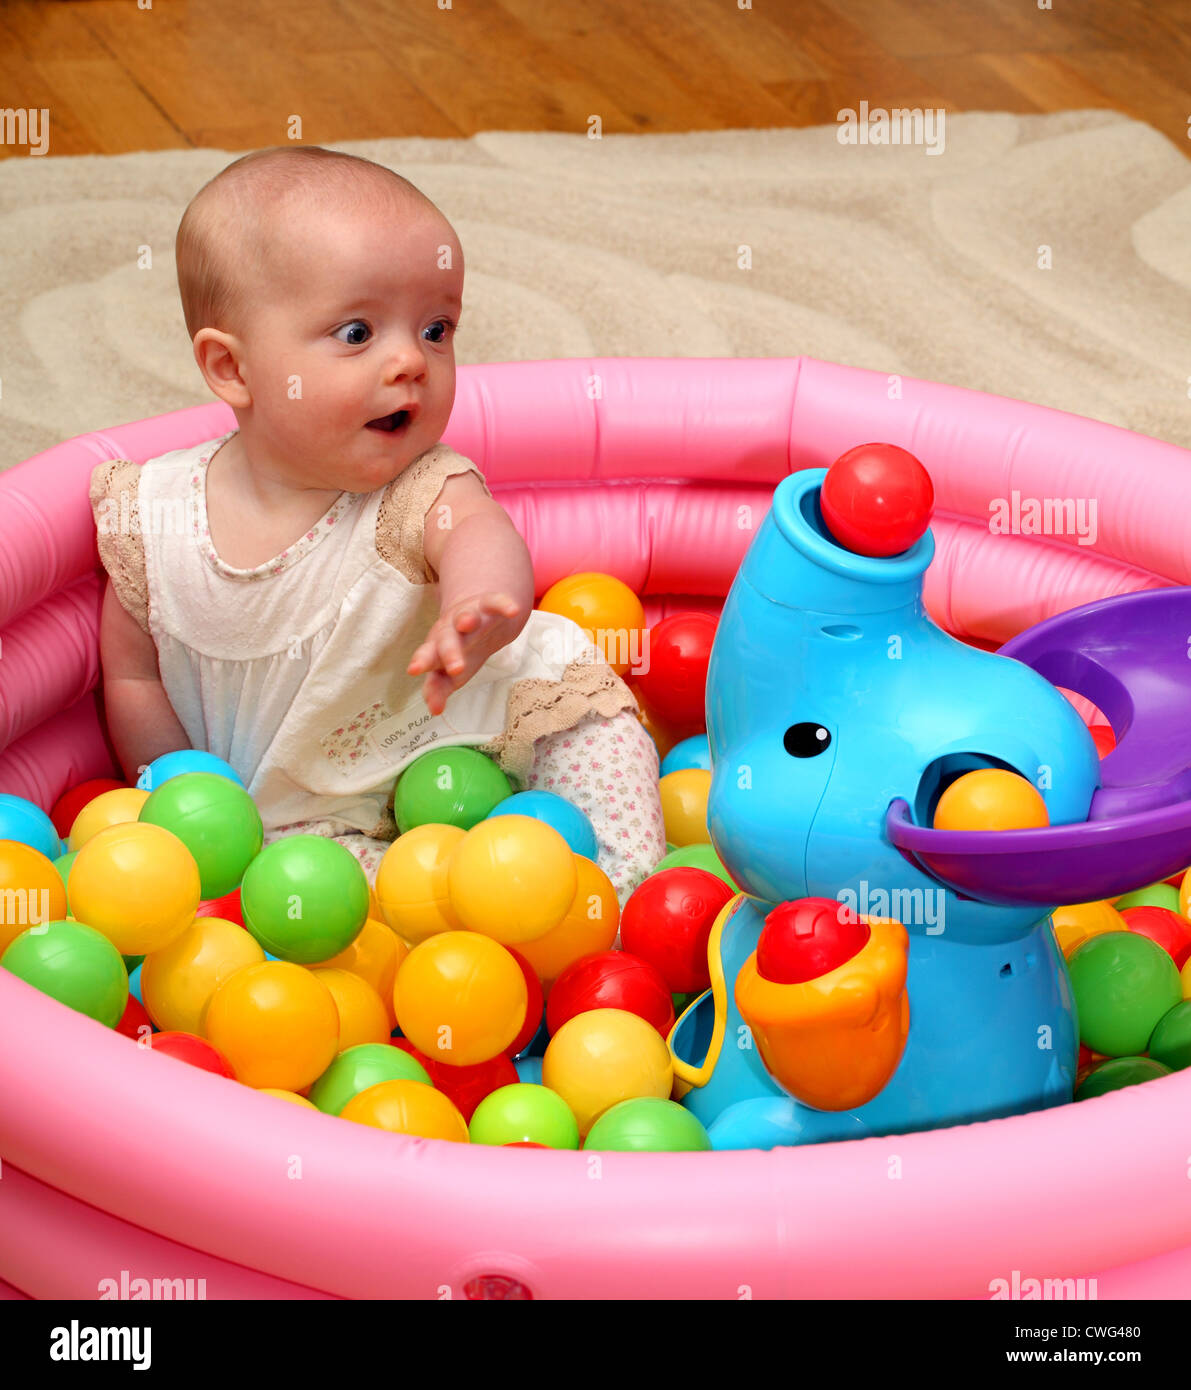 A 6 Month Old Baby Girl Looks Surprised As A Ball Pops Out Of The